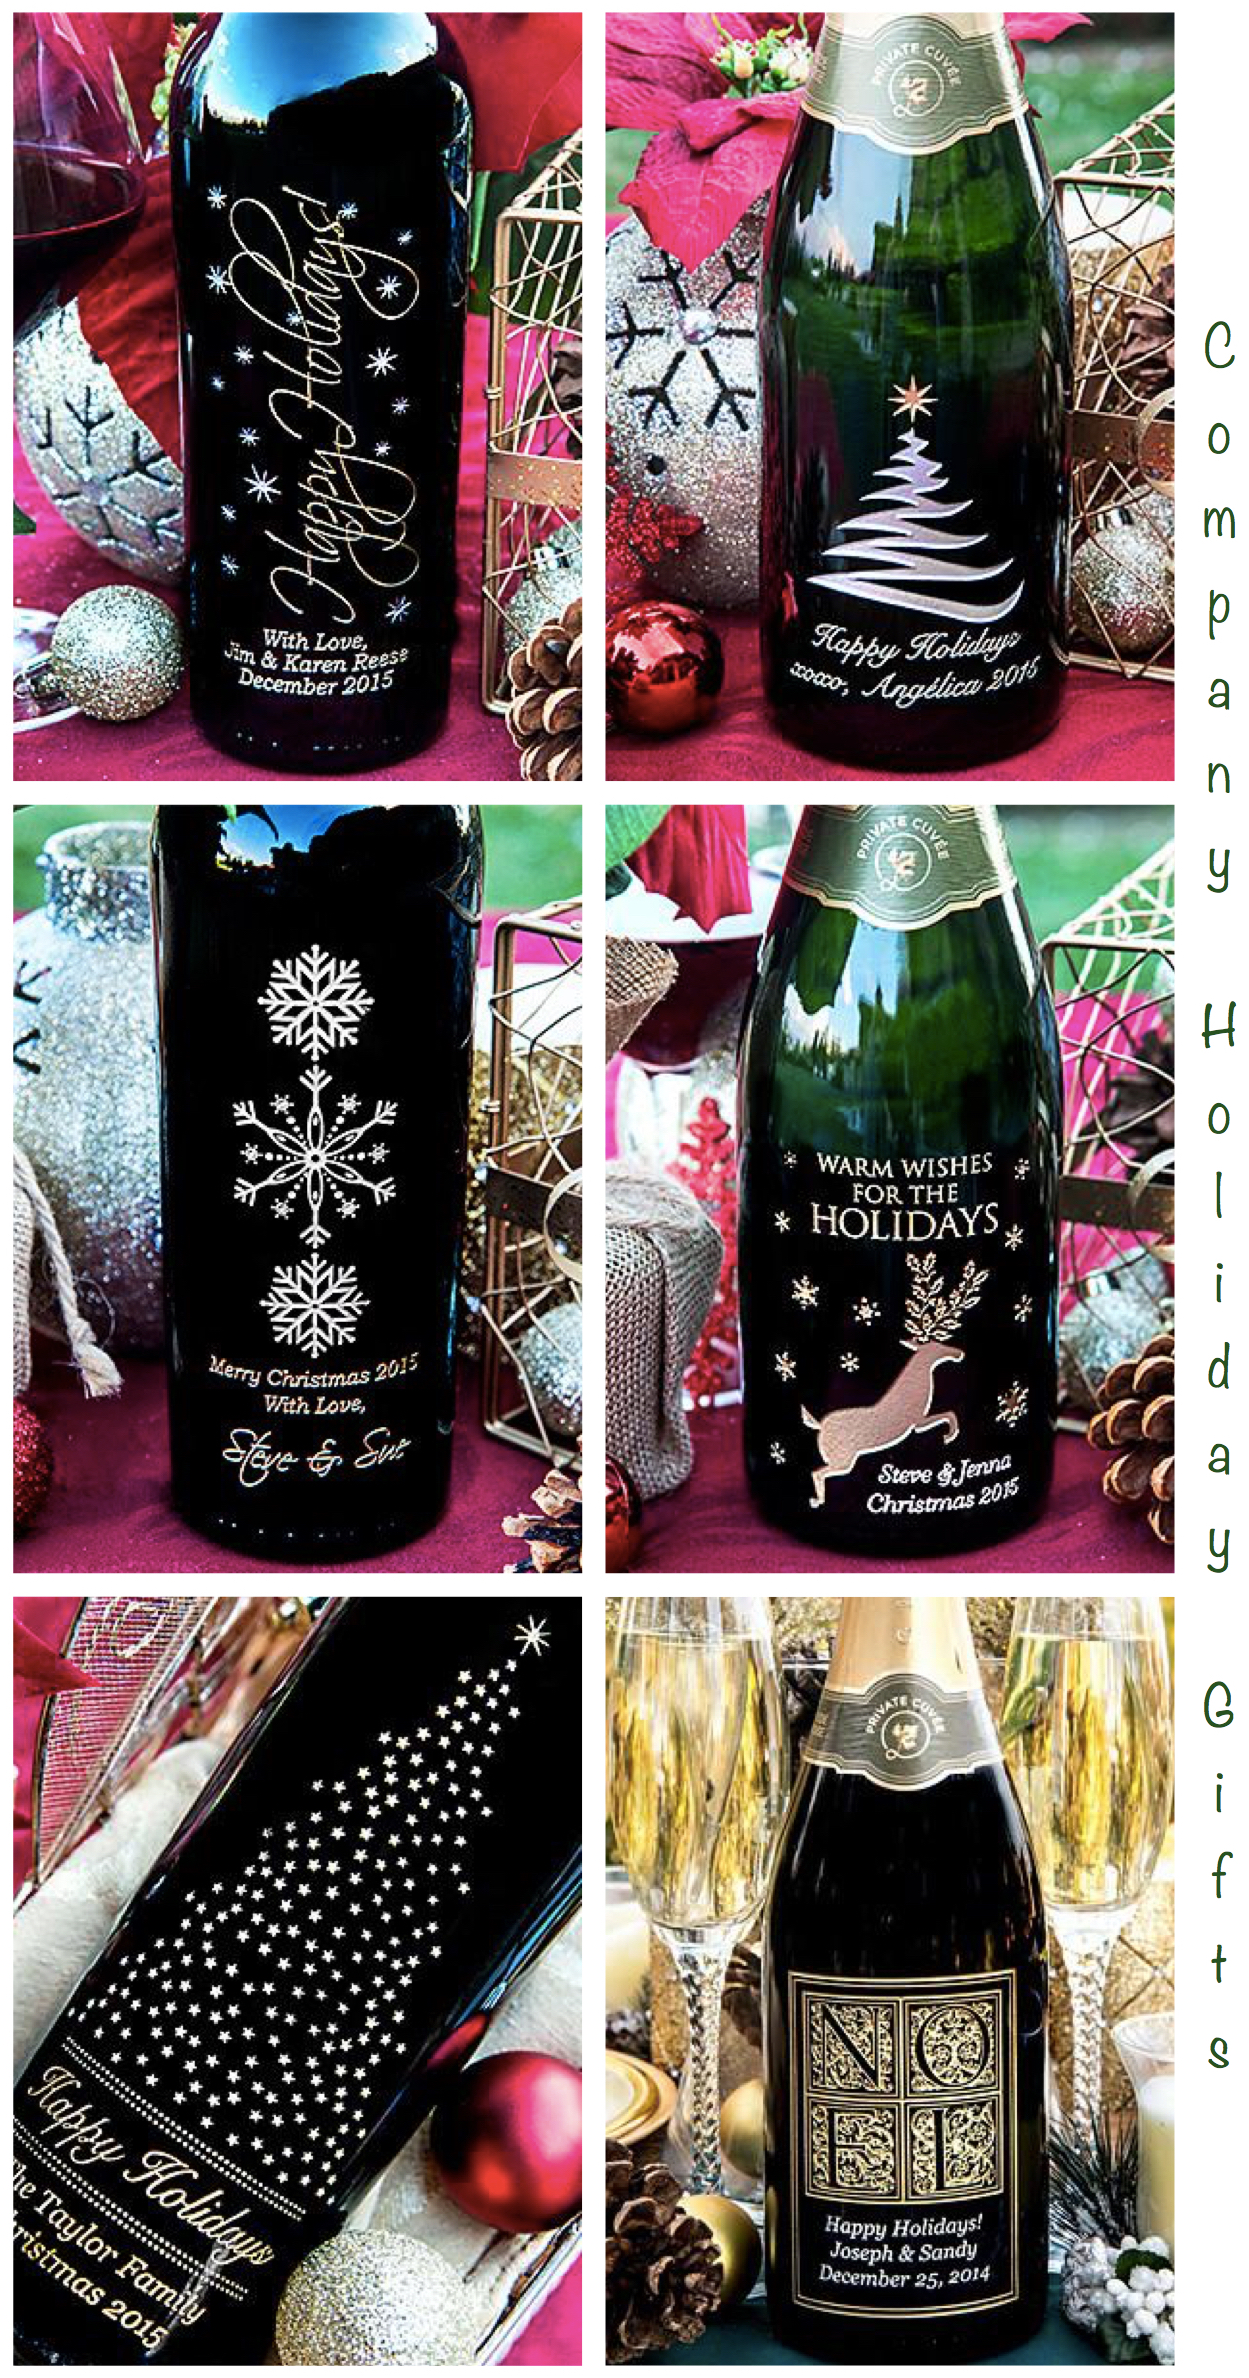 Company Holiday Gifts Personalized Etched Wine Bottles